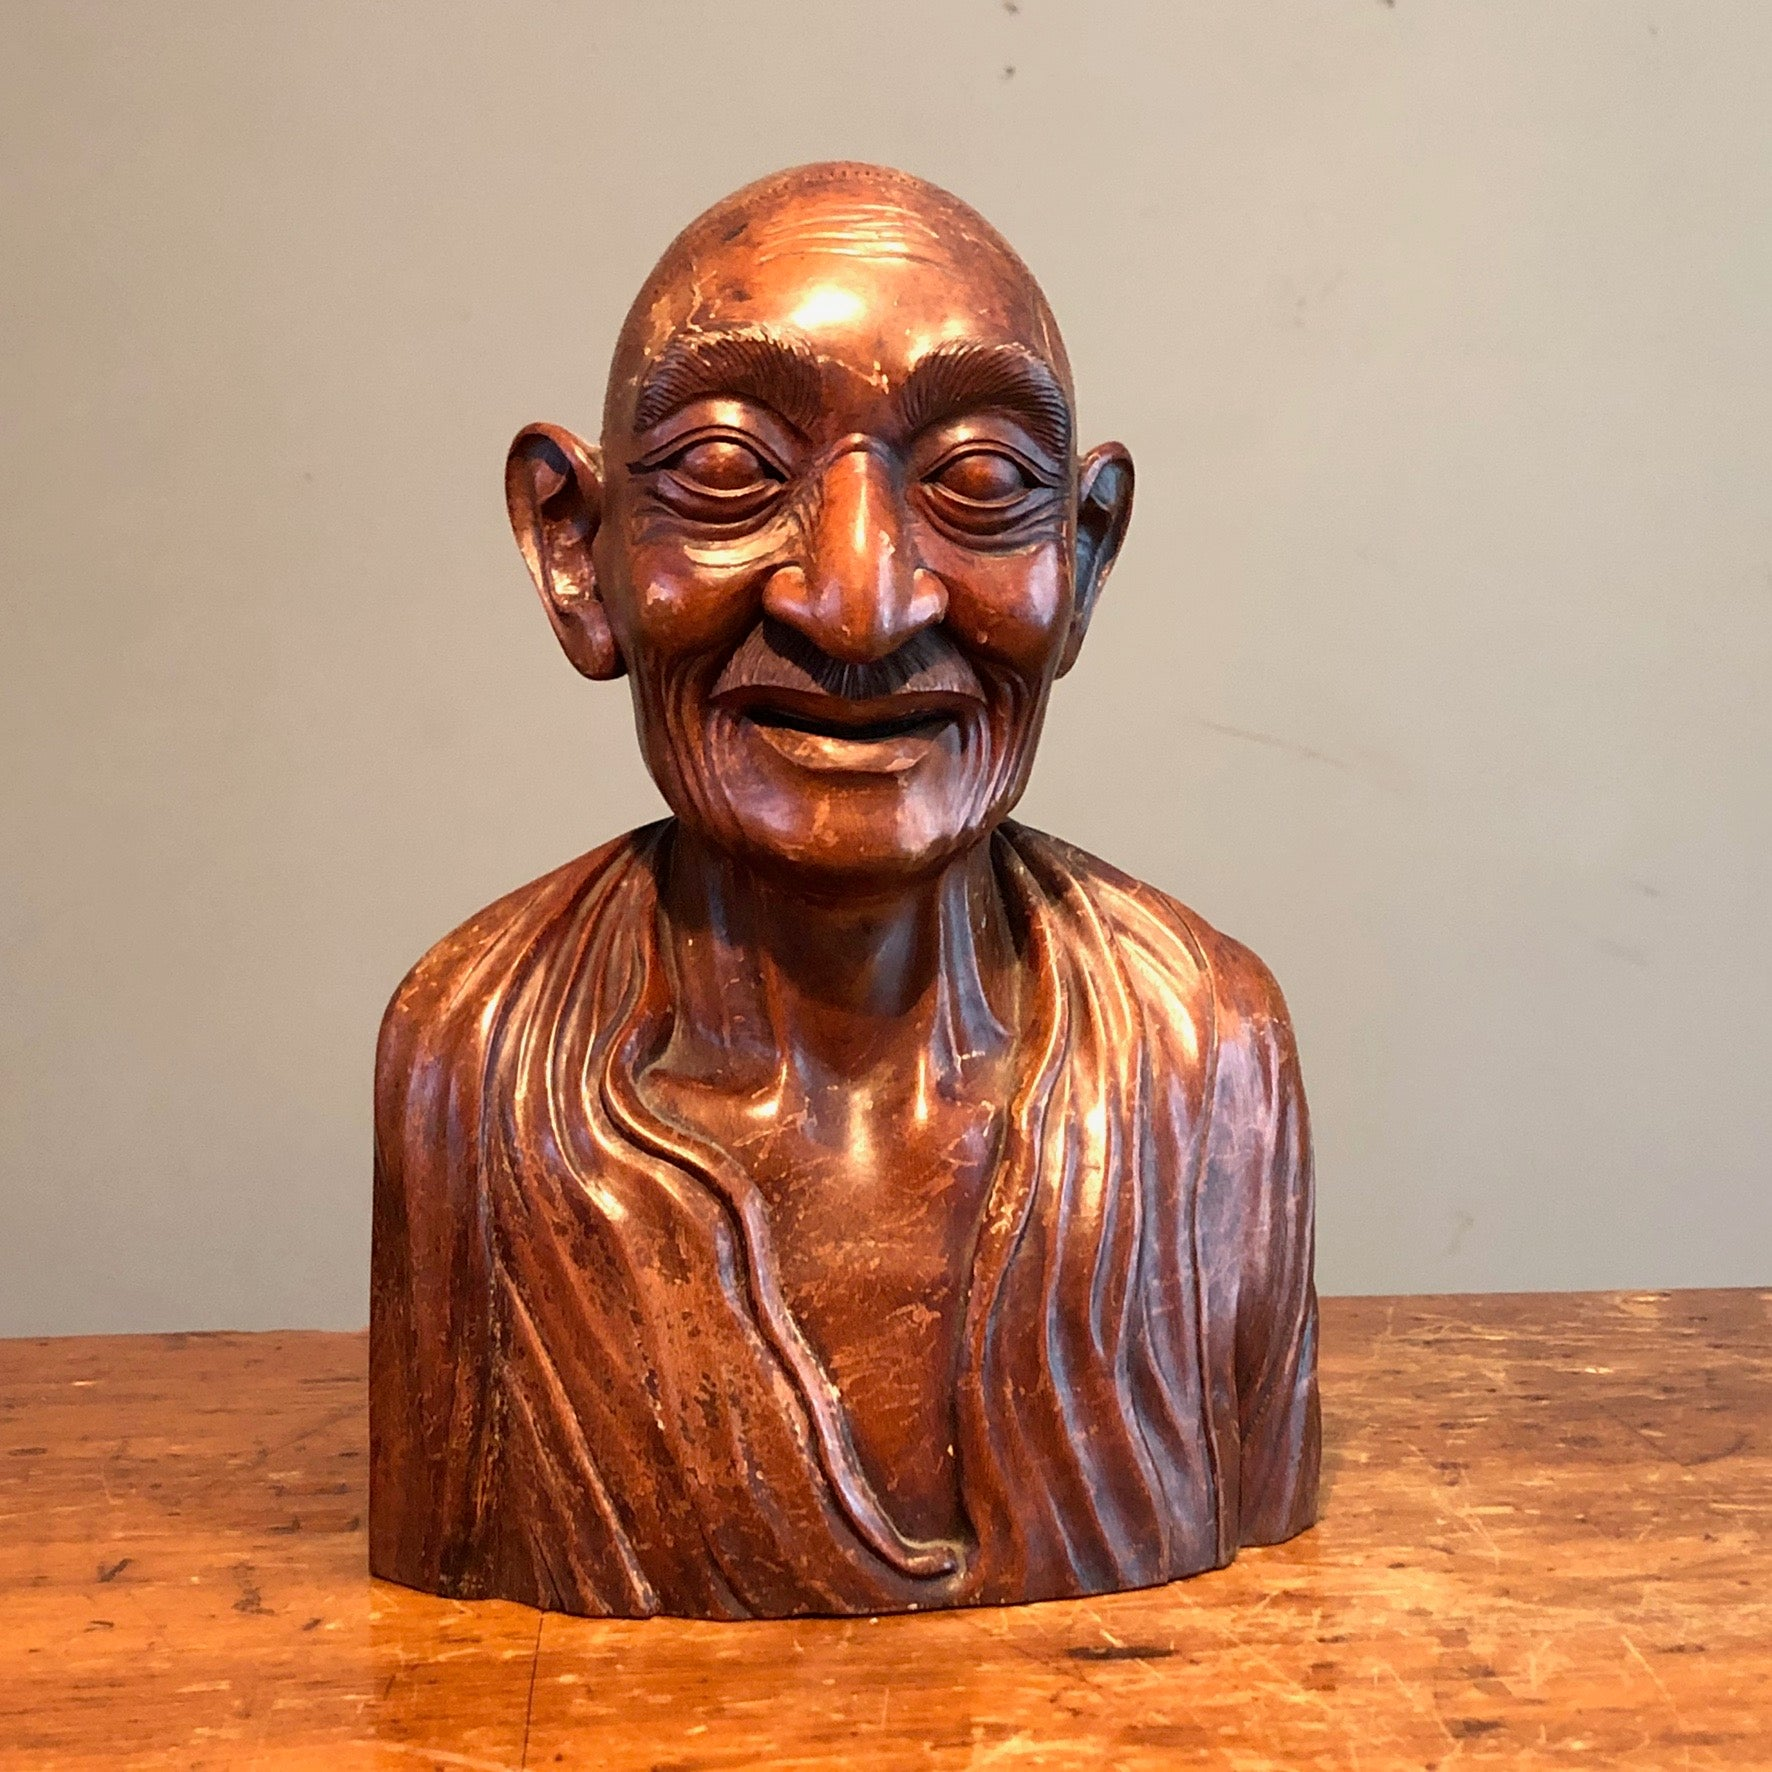 Chinese Wood Bust of Old Man - Turn of the Century - Antique Ornate Sculpture - Rare Asian Carving - Mystery Artist